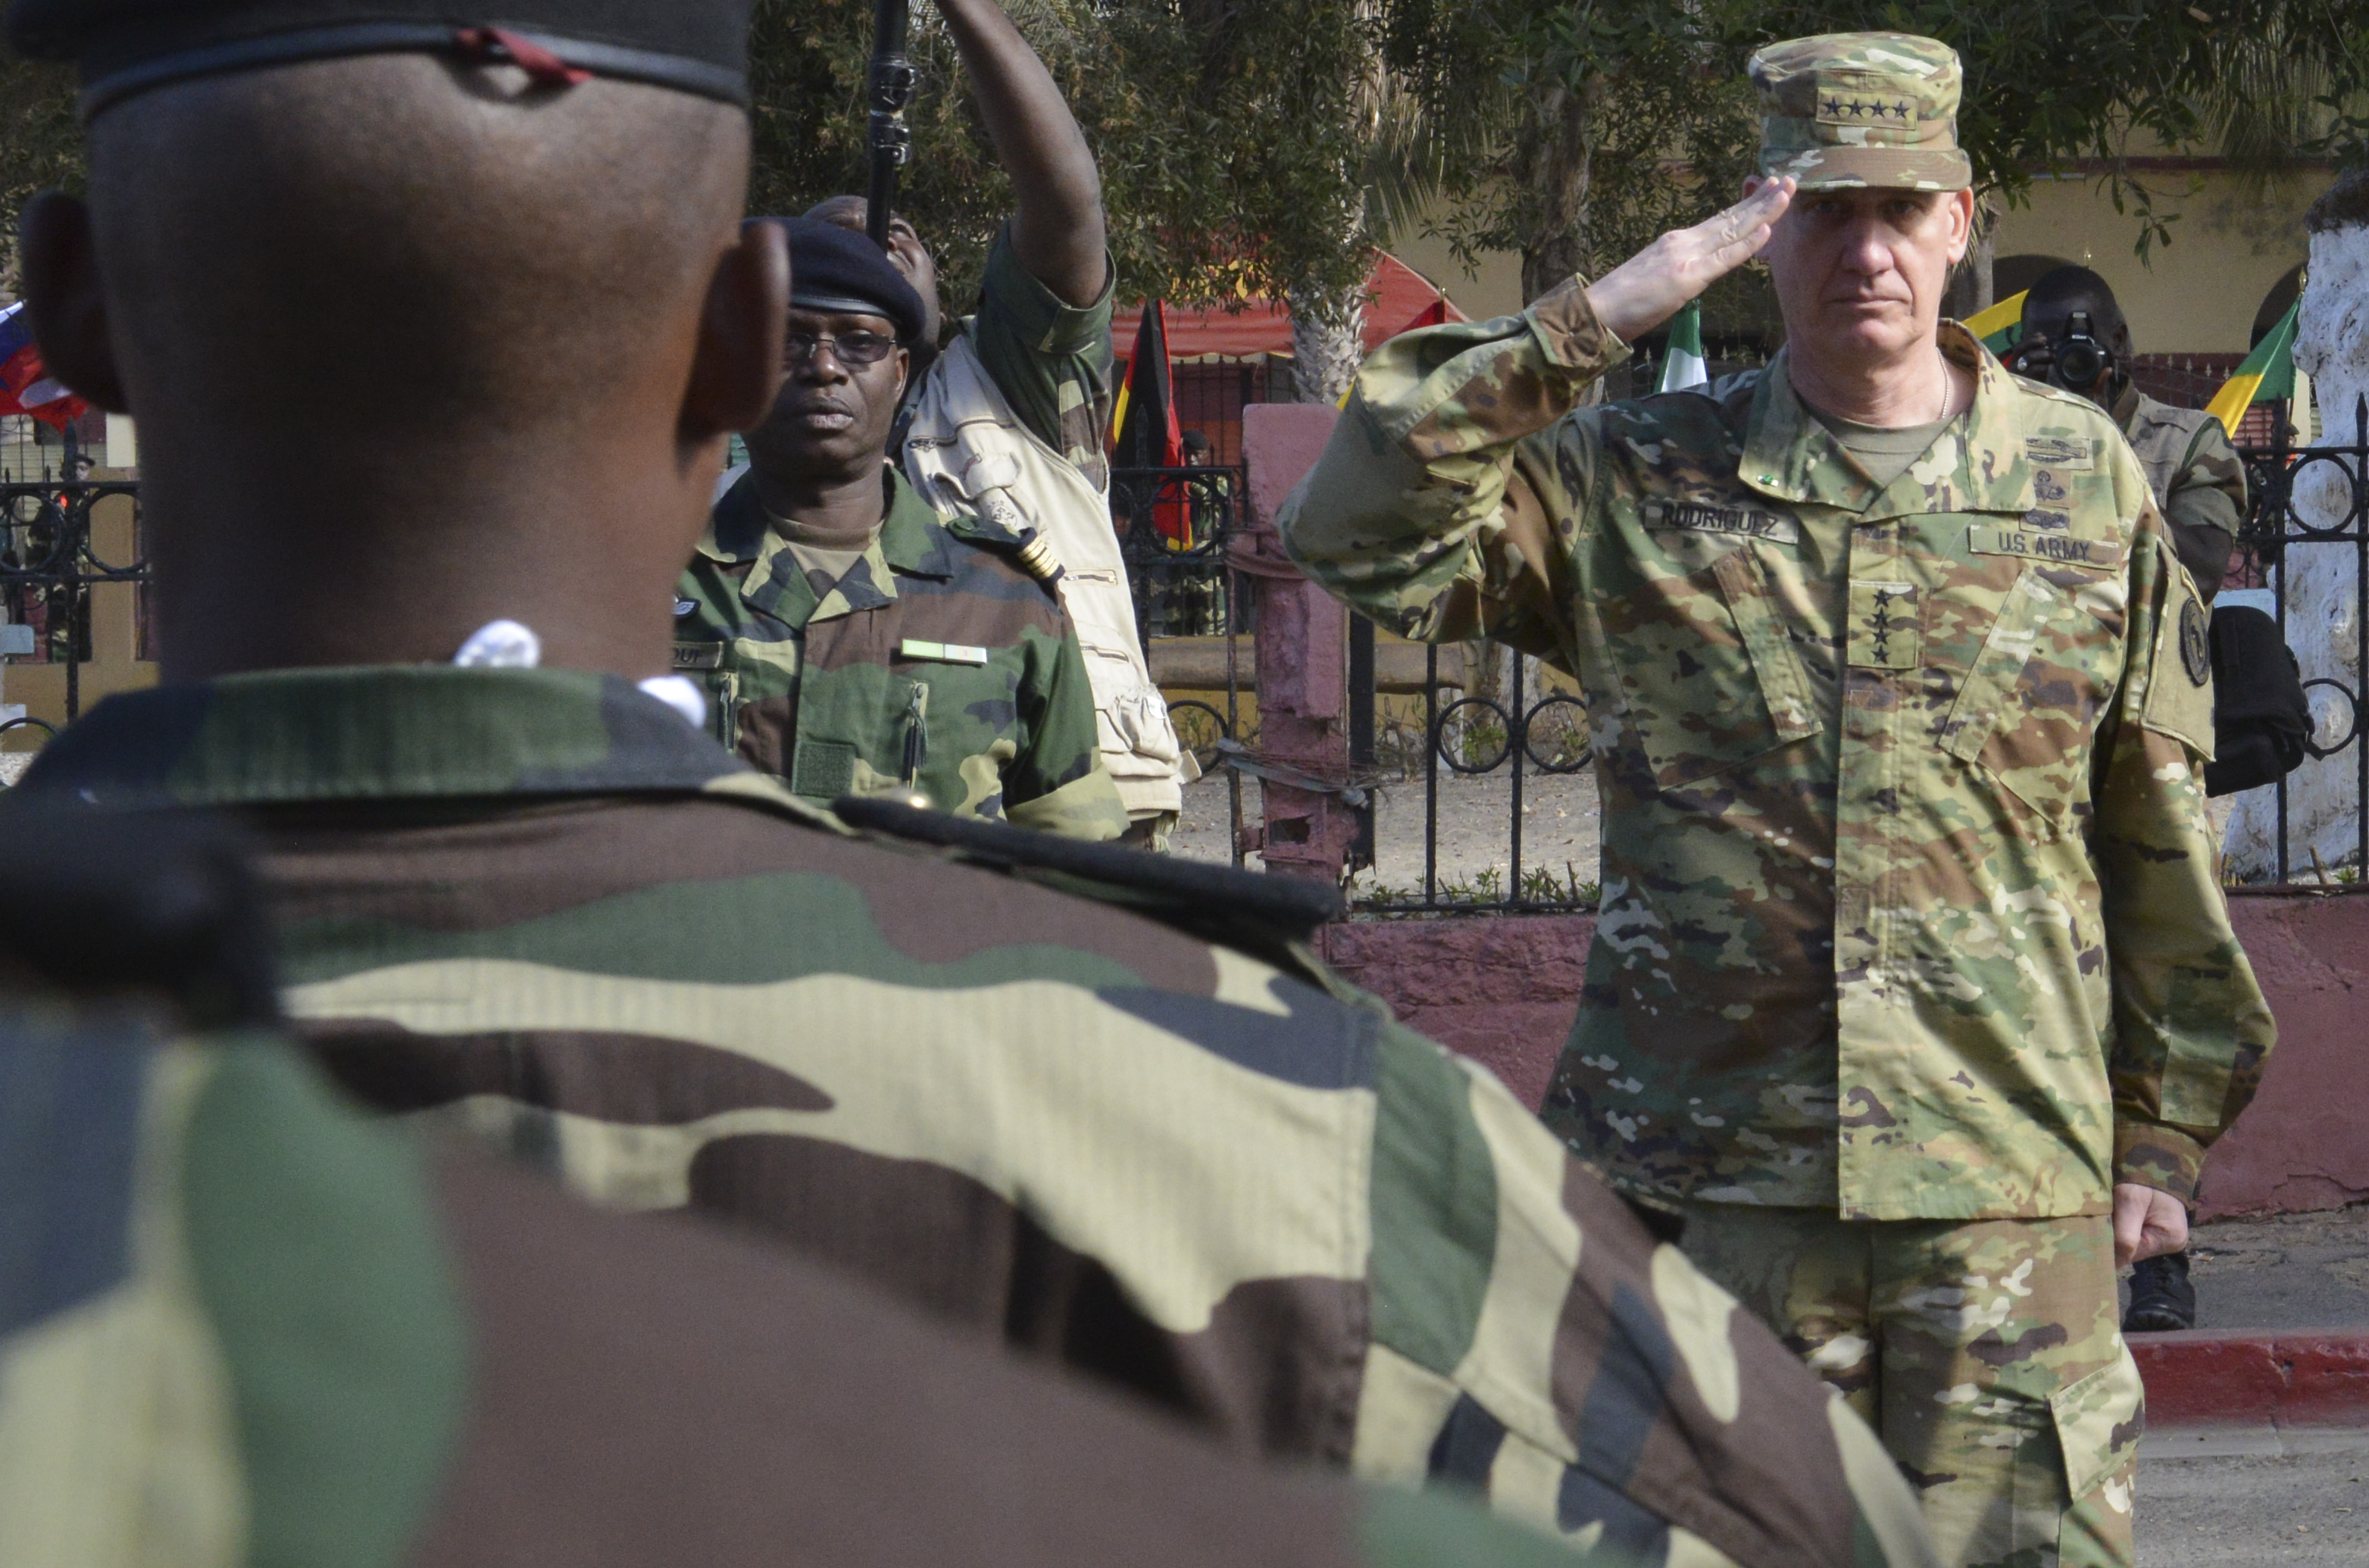 U.S. Army Gen. David Rodriguez, commander of U.S. Africa Command, salutes a formation of Senegalese Soldiers during the closing ceremony for Flintlock 2016 in St. Louis, Senegal, Feb. 29, 2016. Flintlock, sponsored by U.S. Africa Command, is an annual exercise designed to increase interoperability among multinational Special Operations Forces. (Photo by U.S. Army Staff Sgt. Christopher Klutts, U.S. Africa Command)